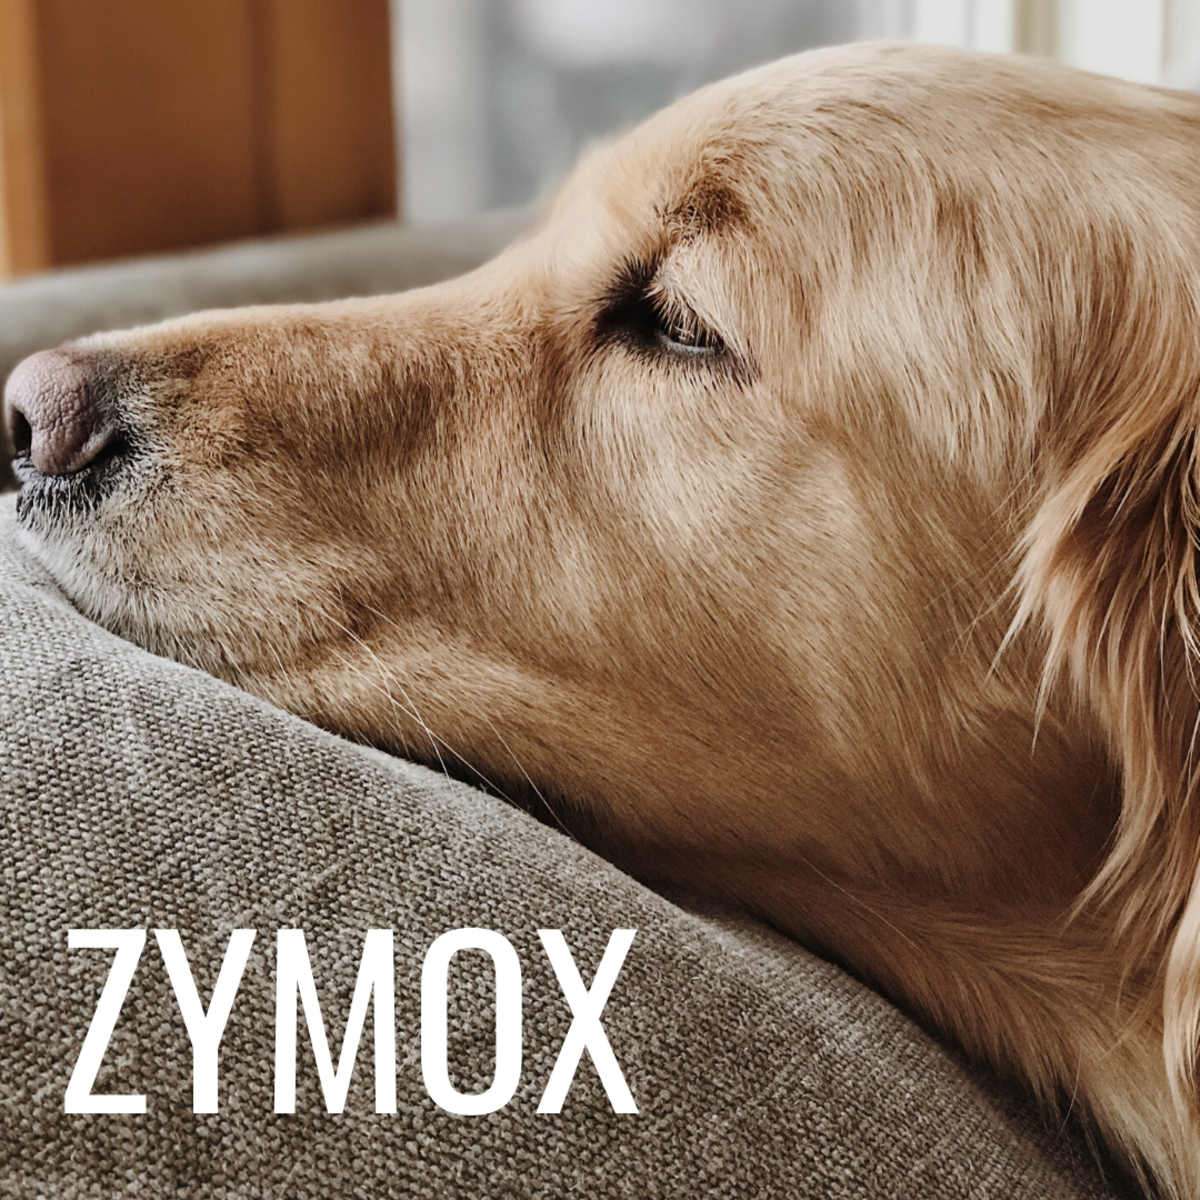 Zymox is made for acute and chronic inflammation of the external ear.